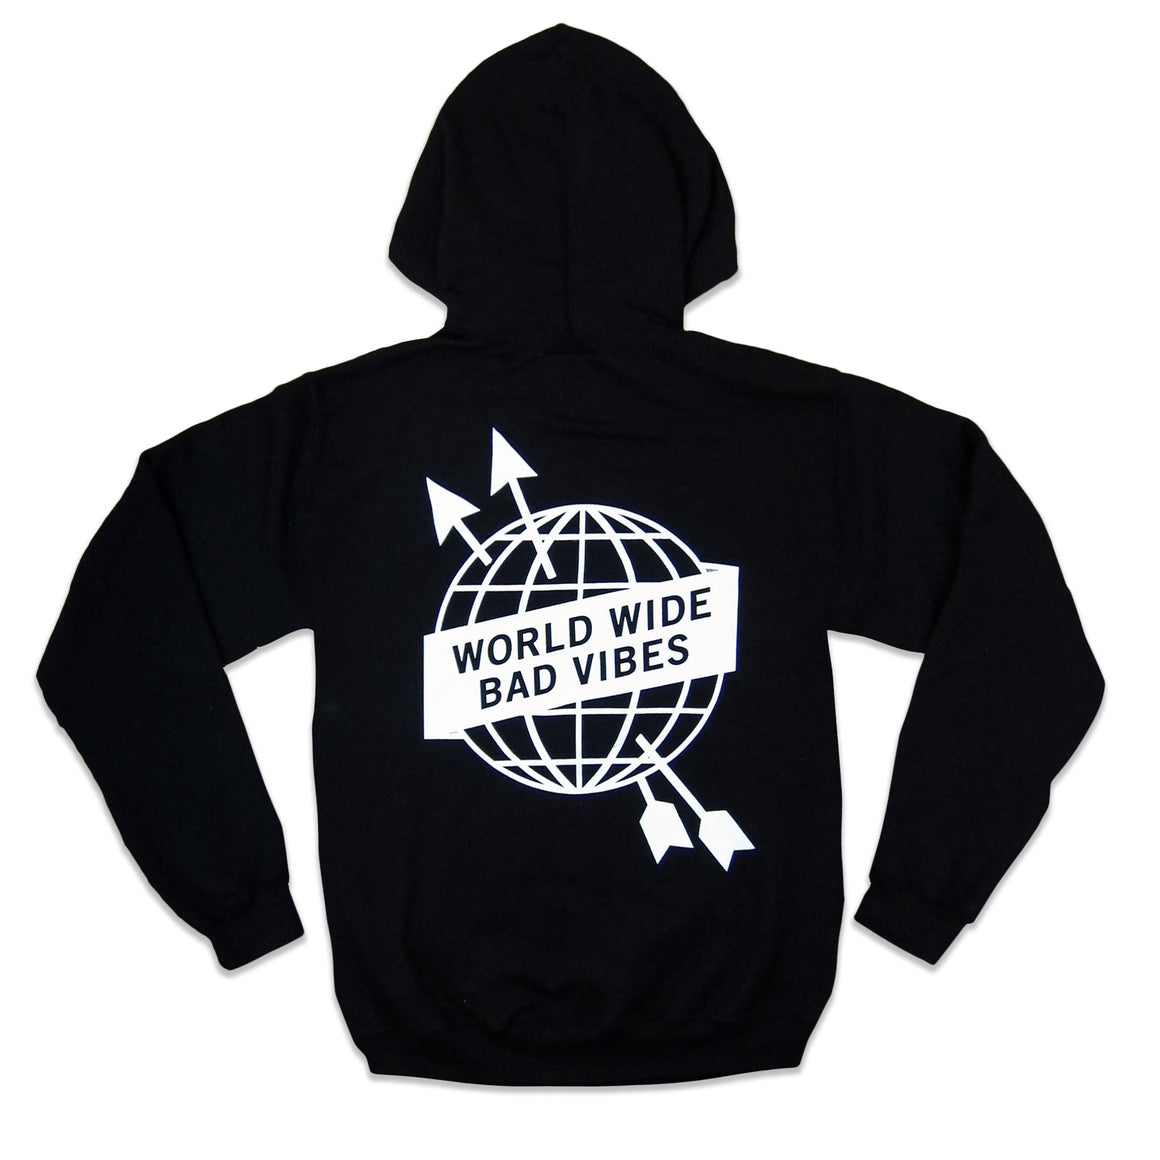 """World Wide Bad Vibes"" hoodie"